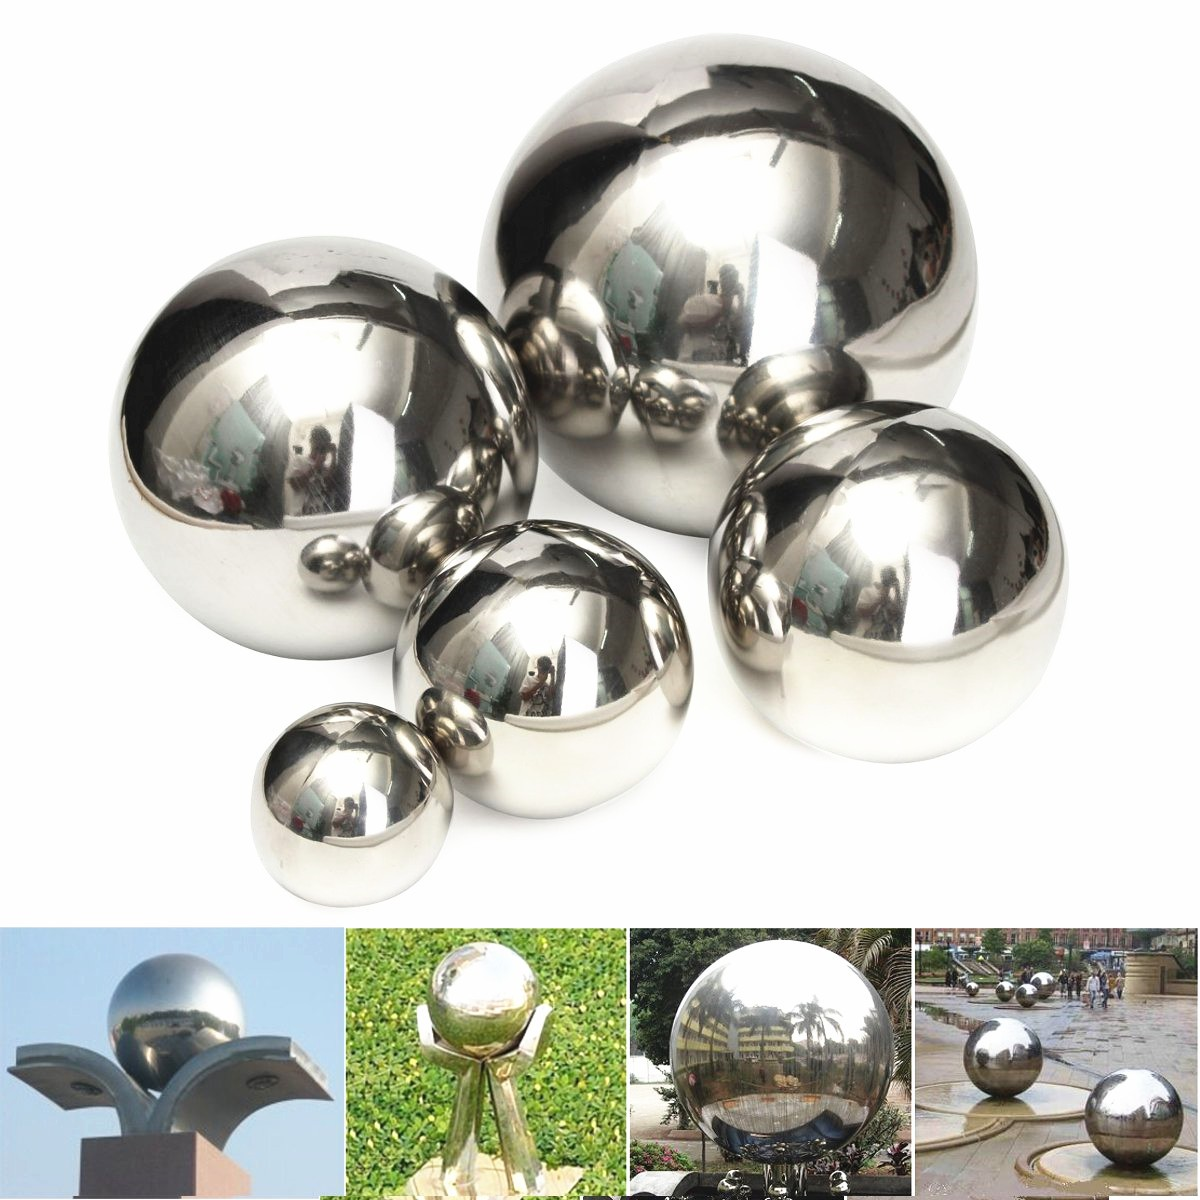 Stainless Steel Mirror Ball Polished Hollow Ball Hardware Accessories 5/8/10/12/15cm 2pcs s608zz s608 2z stainless steel ball bearing 8 x 22 x 7mm